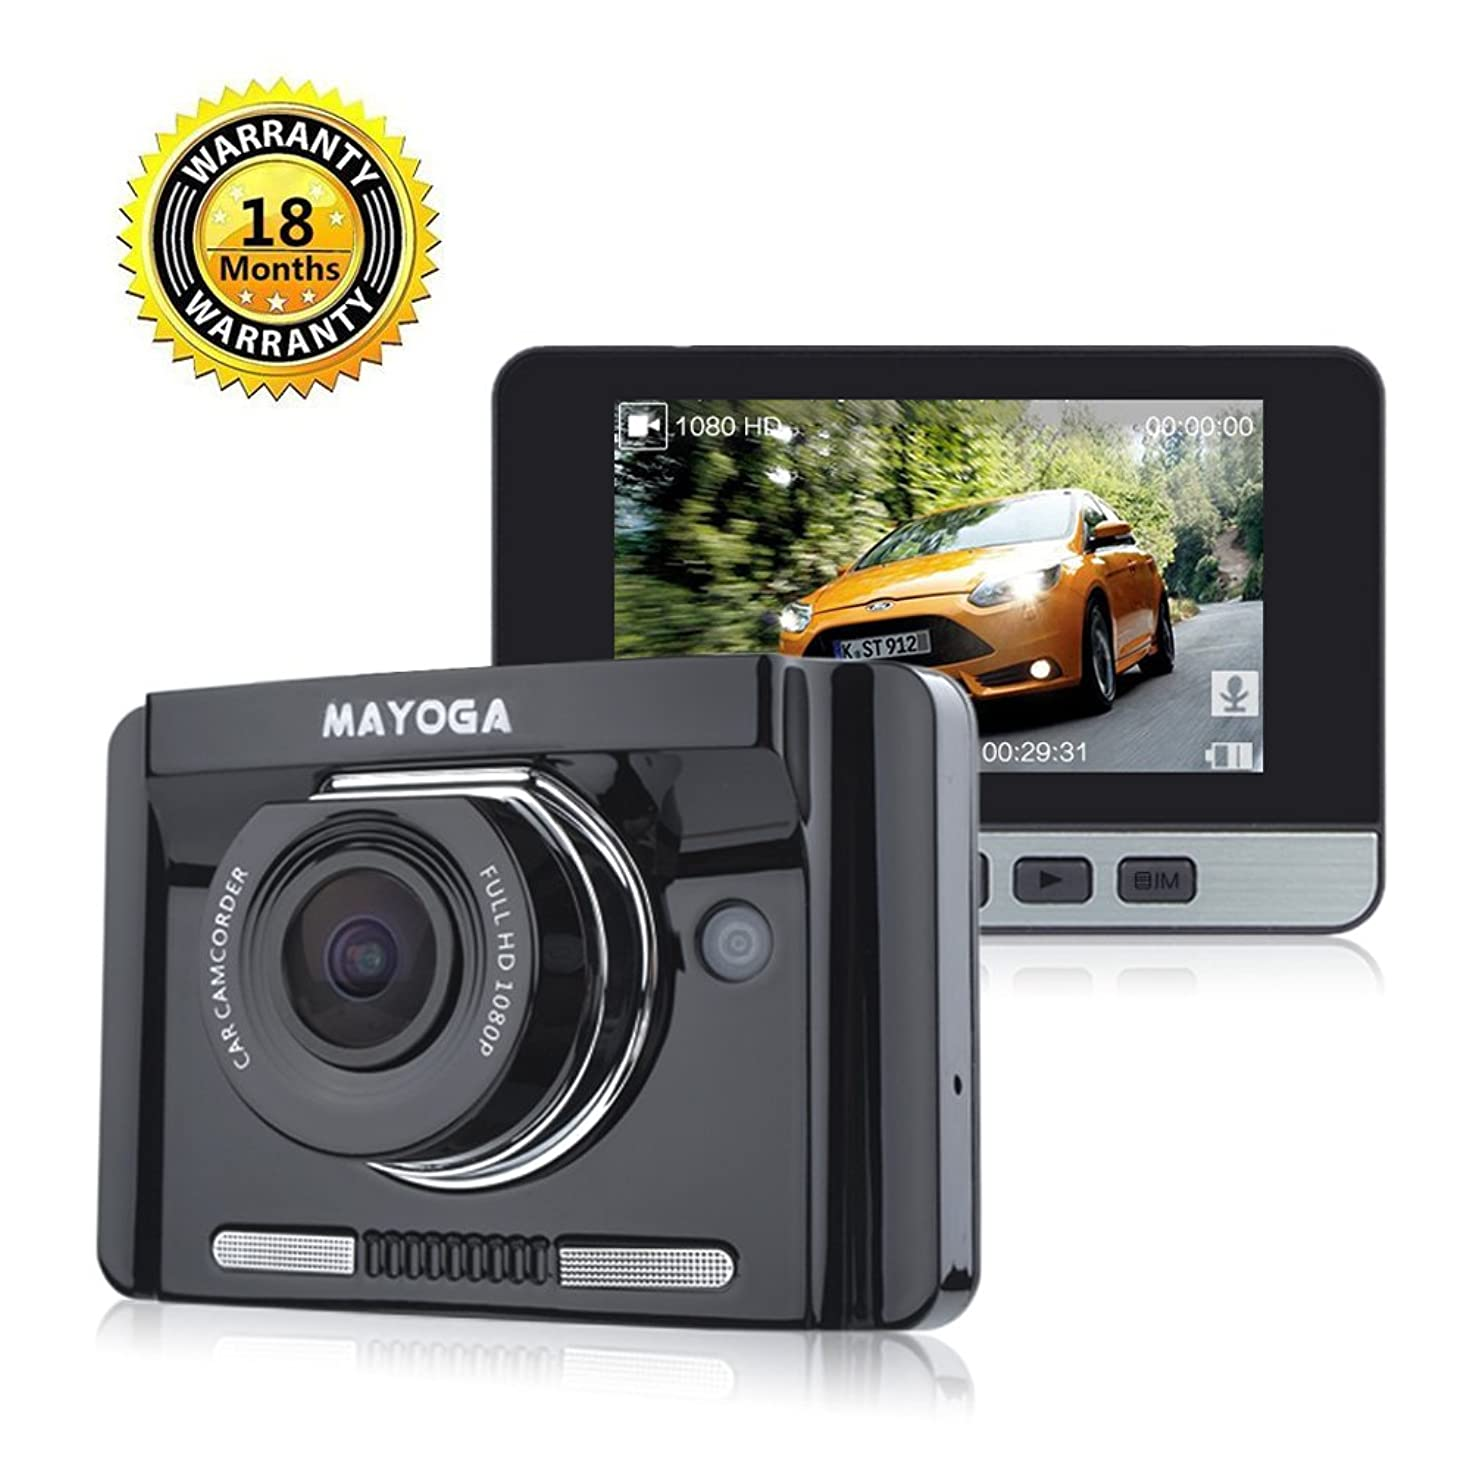 MAYOGA Car Dash Cam FHD 1080P Car DVR Video Recorder 170 Degree Wide-angle Dashboard Driving Camera with 2.7